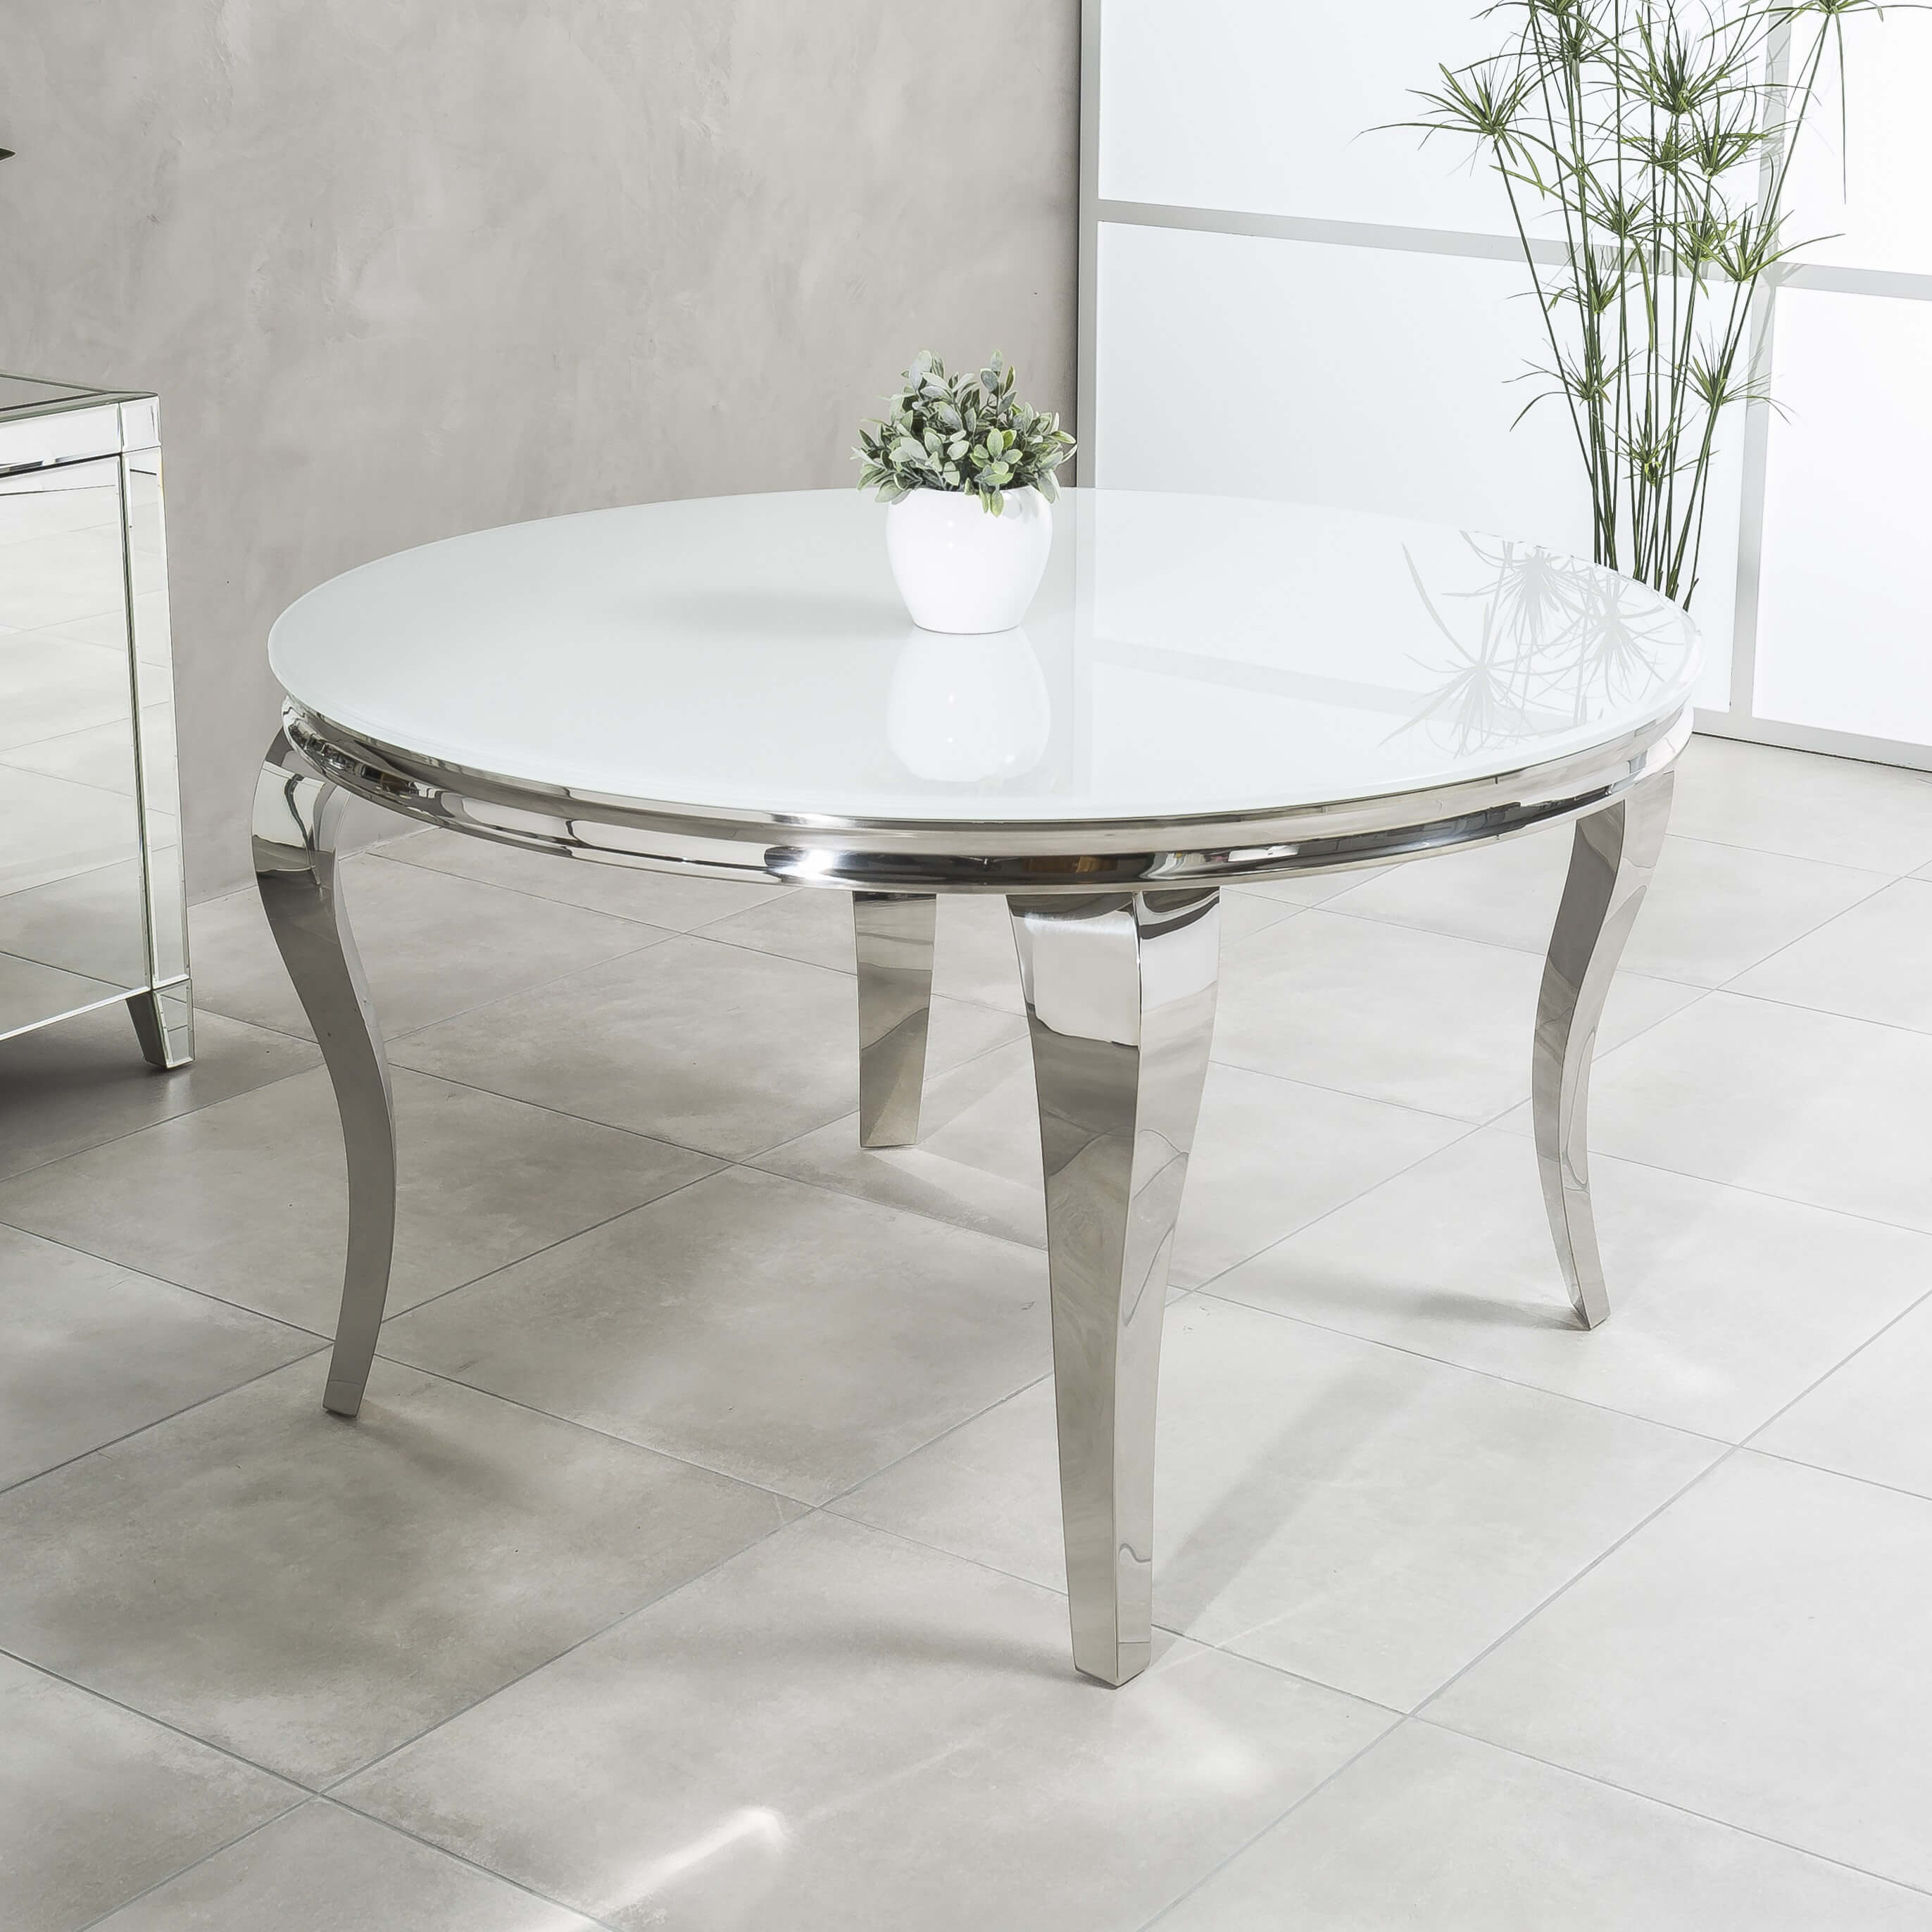 1.3m Louis Polished Circular Stainless Steel Dining Table with White Glass